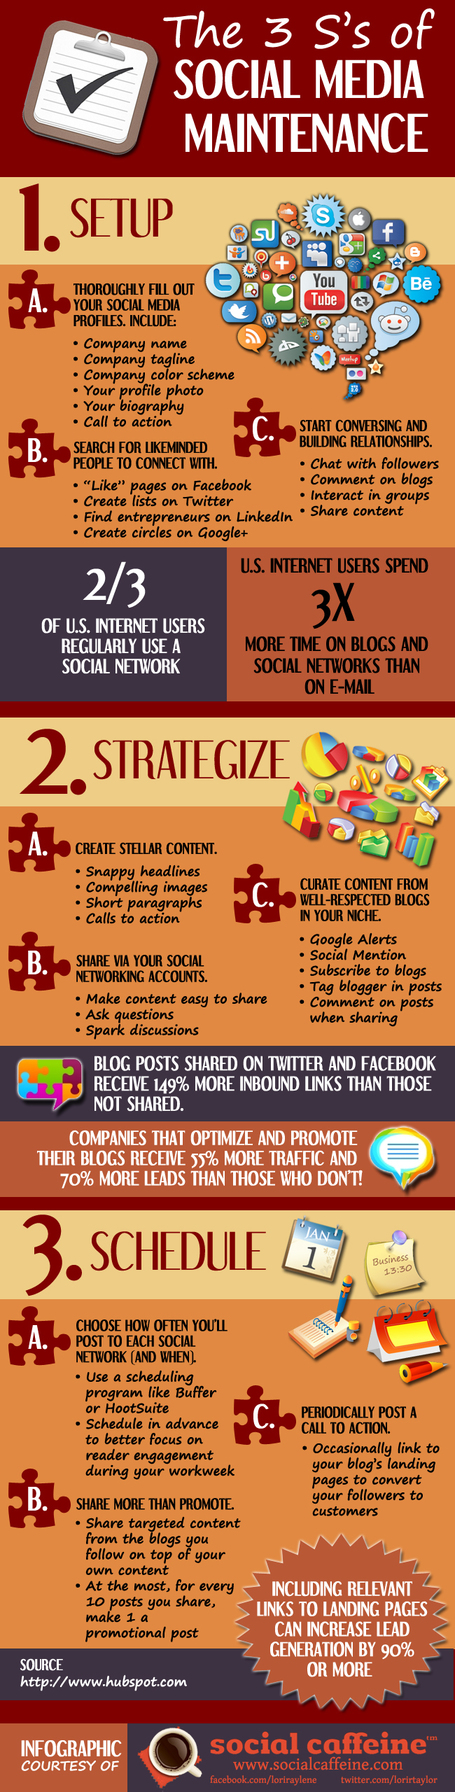 3 S's of Social Media: Setup, Strategize and Schedule [Infographic] | Personal Branding and Professional networks | Scoop.it